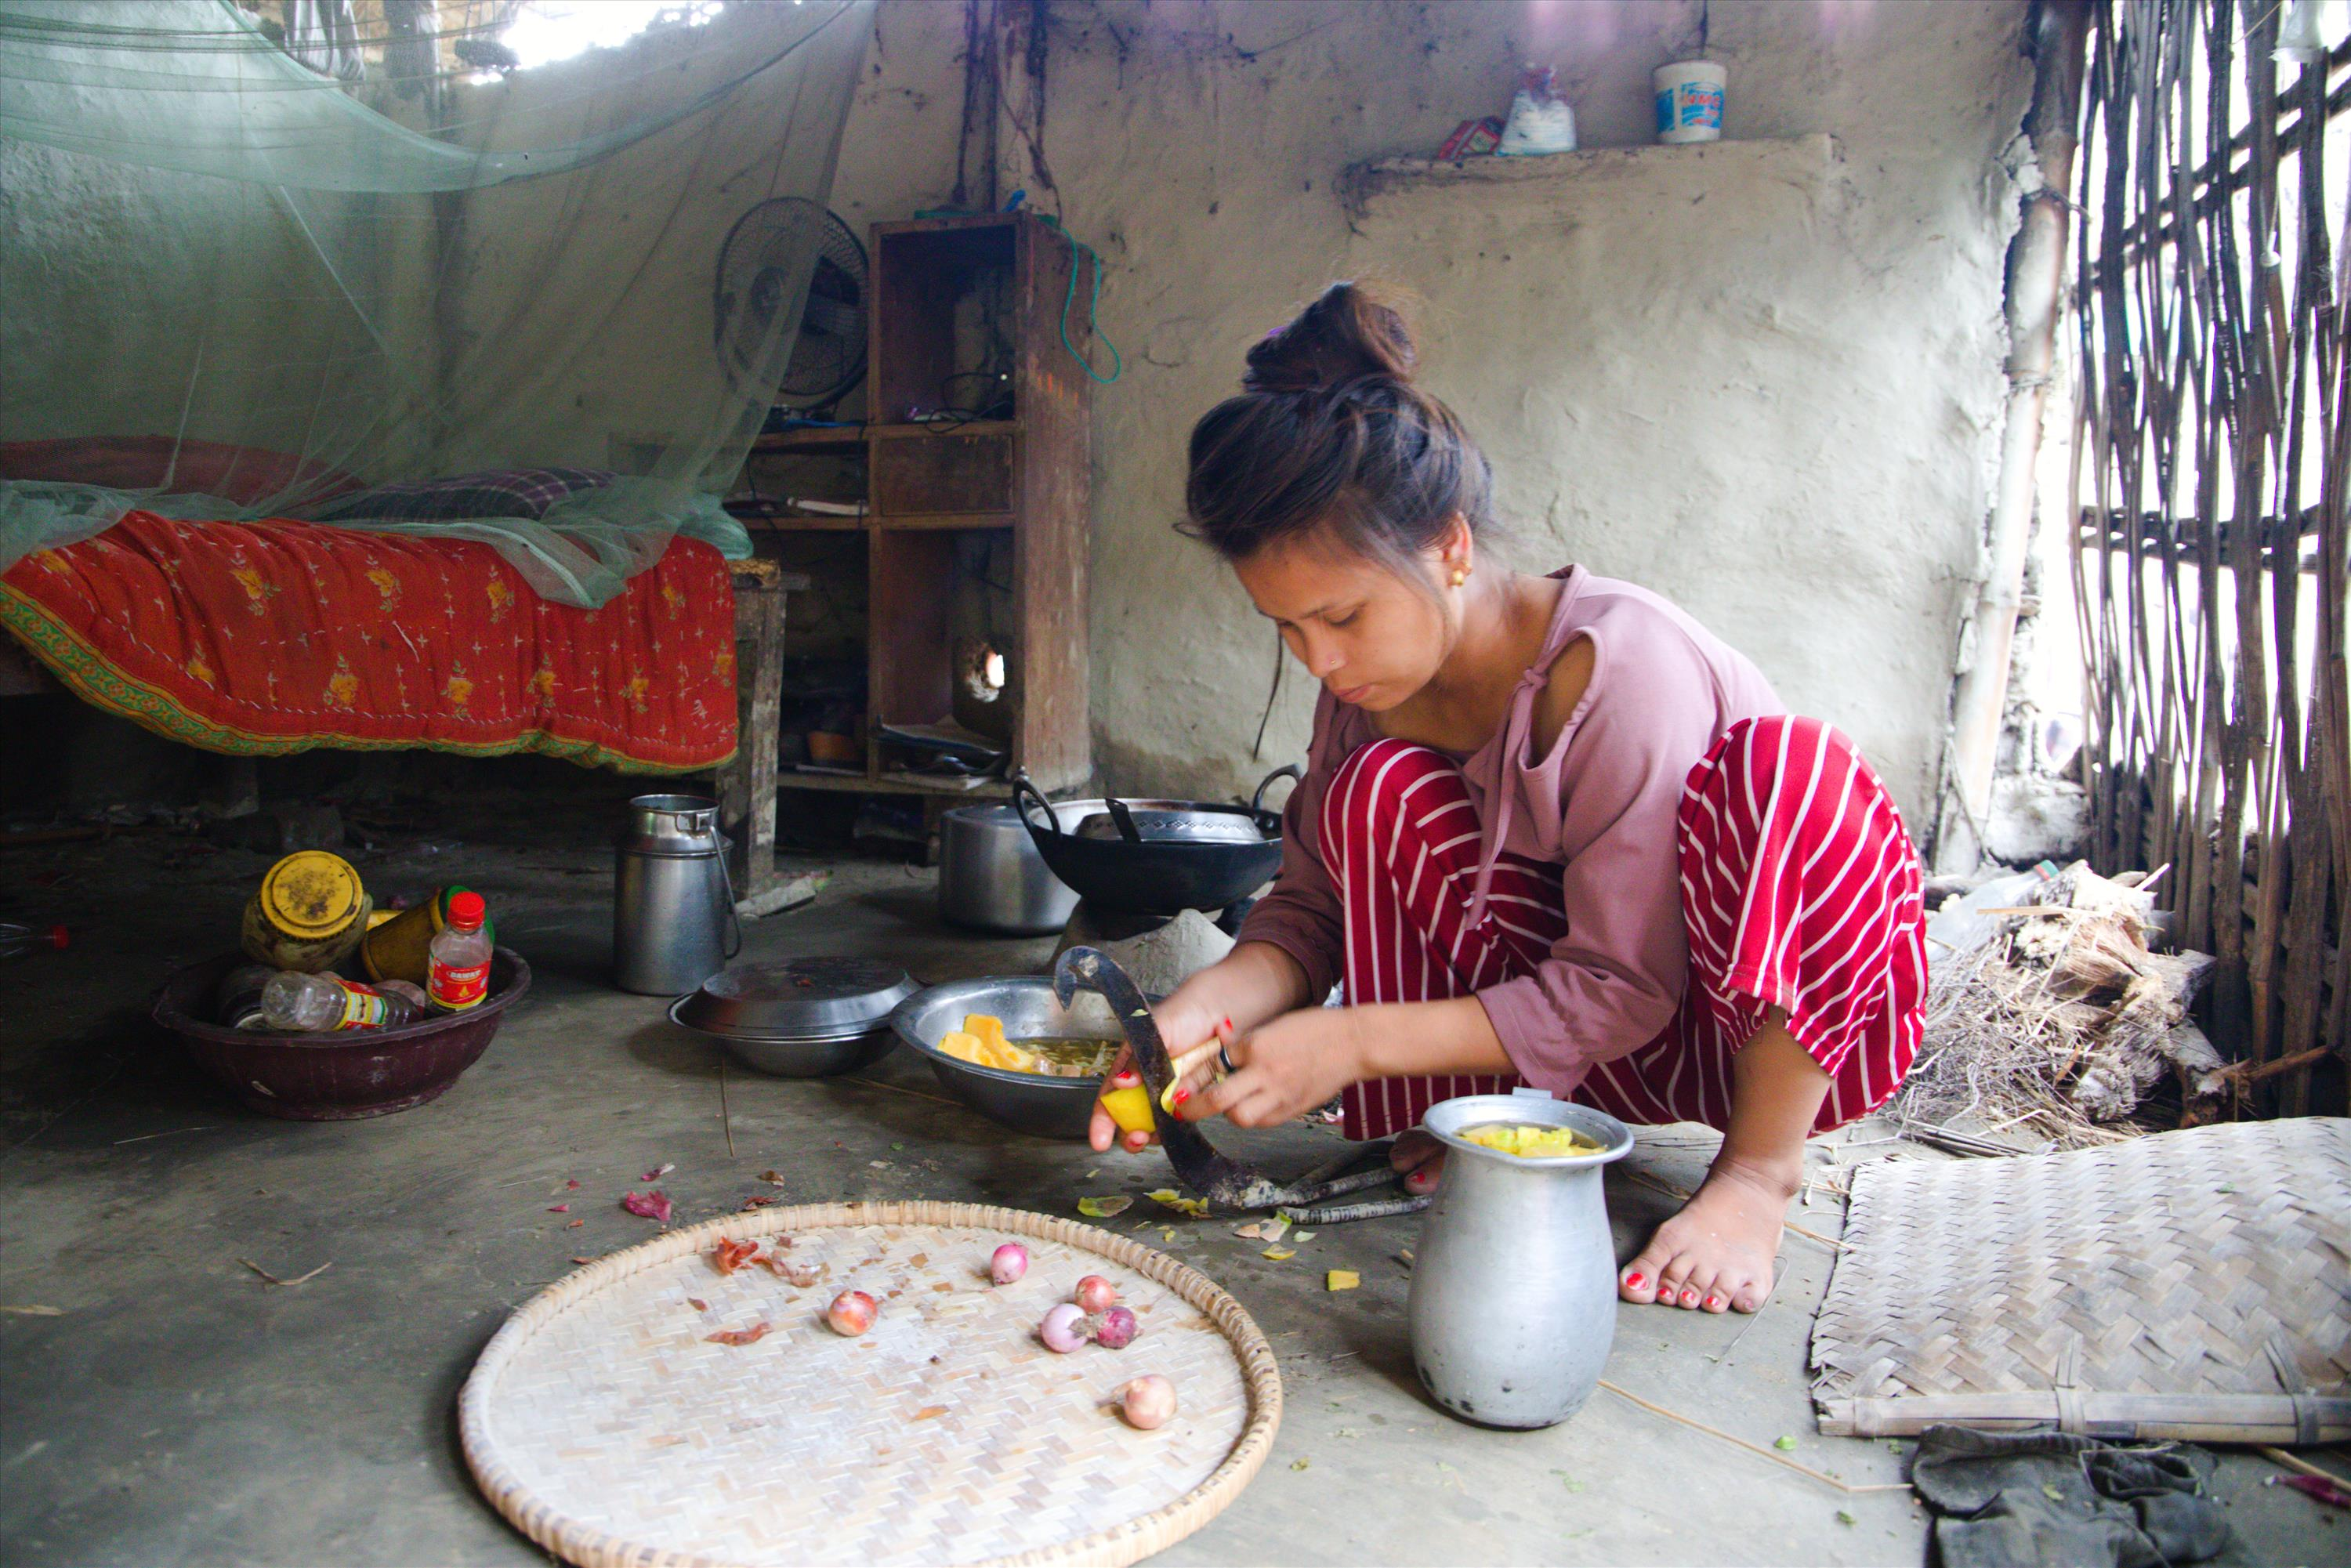 Prabha prepares food for her family